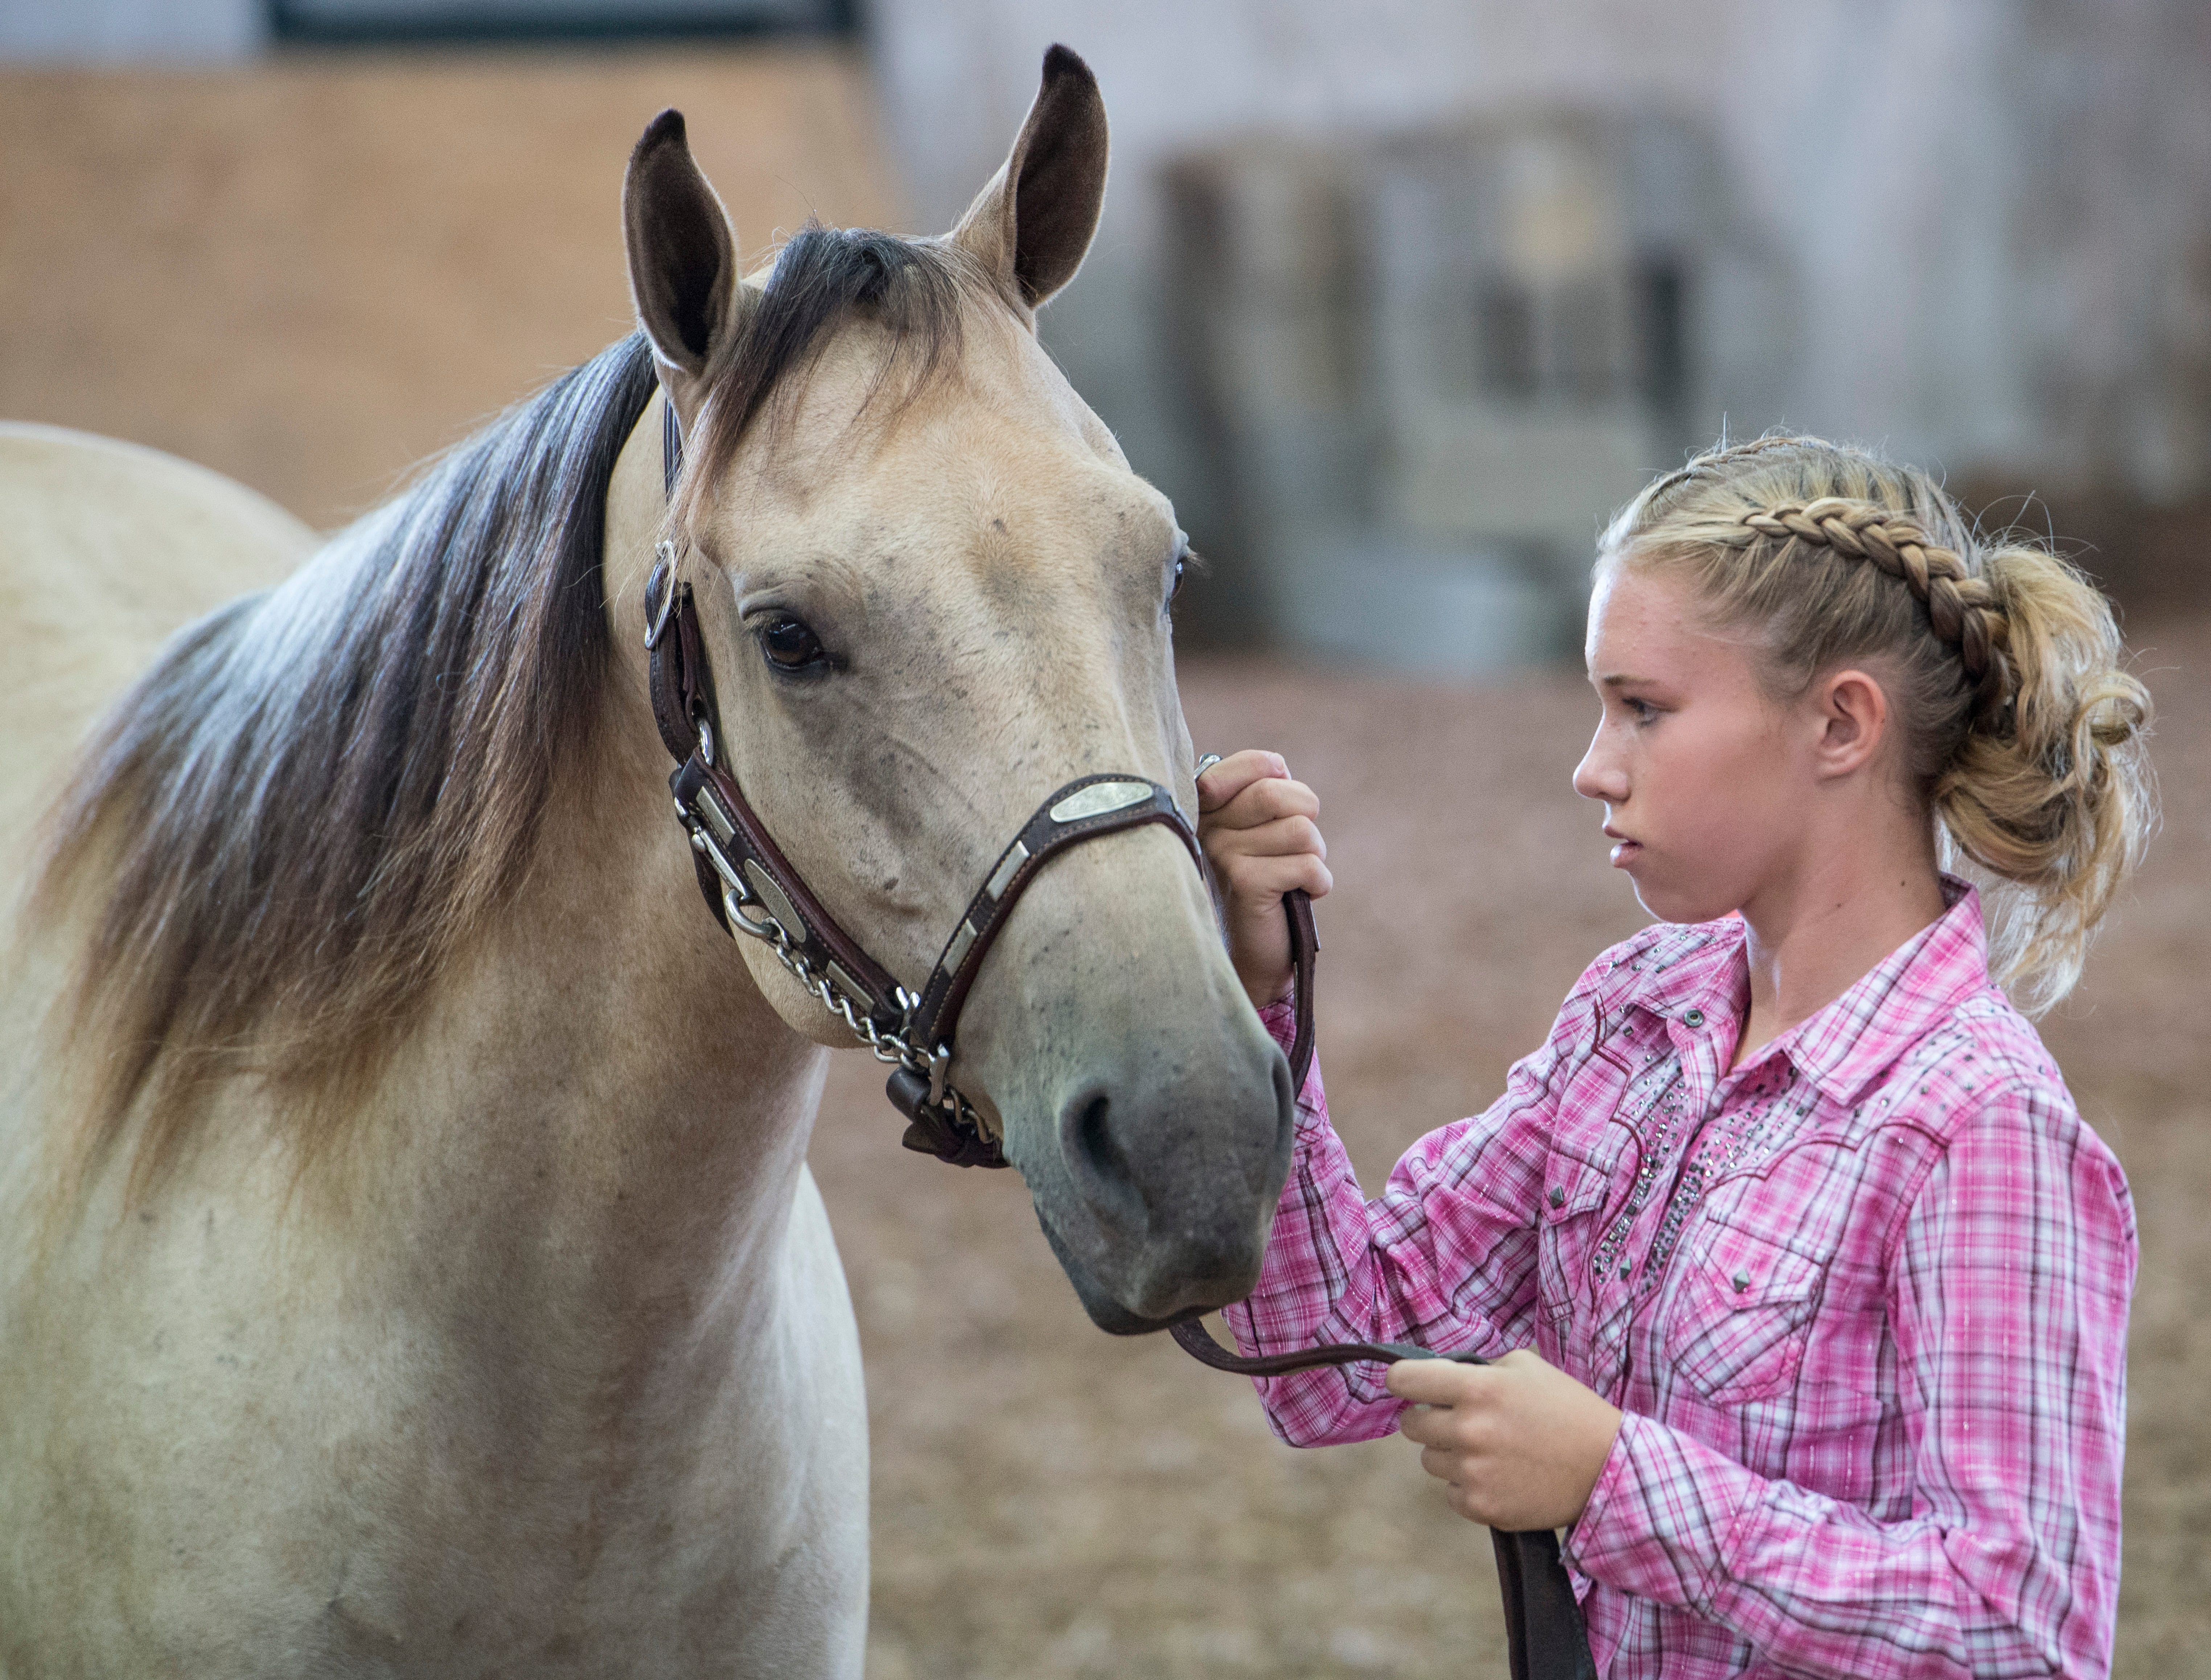 Chloe Willis, junior contestant, works with a horse during the Showman of Showmen Contest in Large Animals at the Ross County Fair on August 10, 2018, in Chillicothe, Ohio.